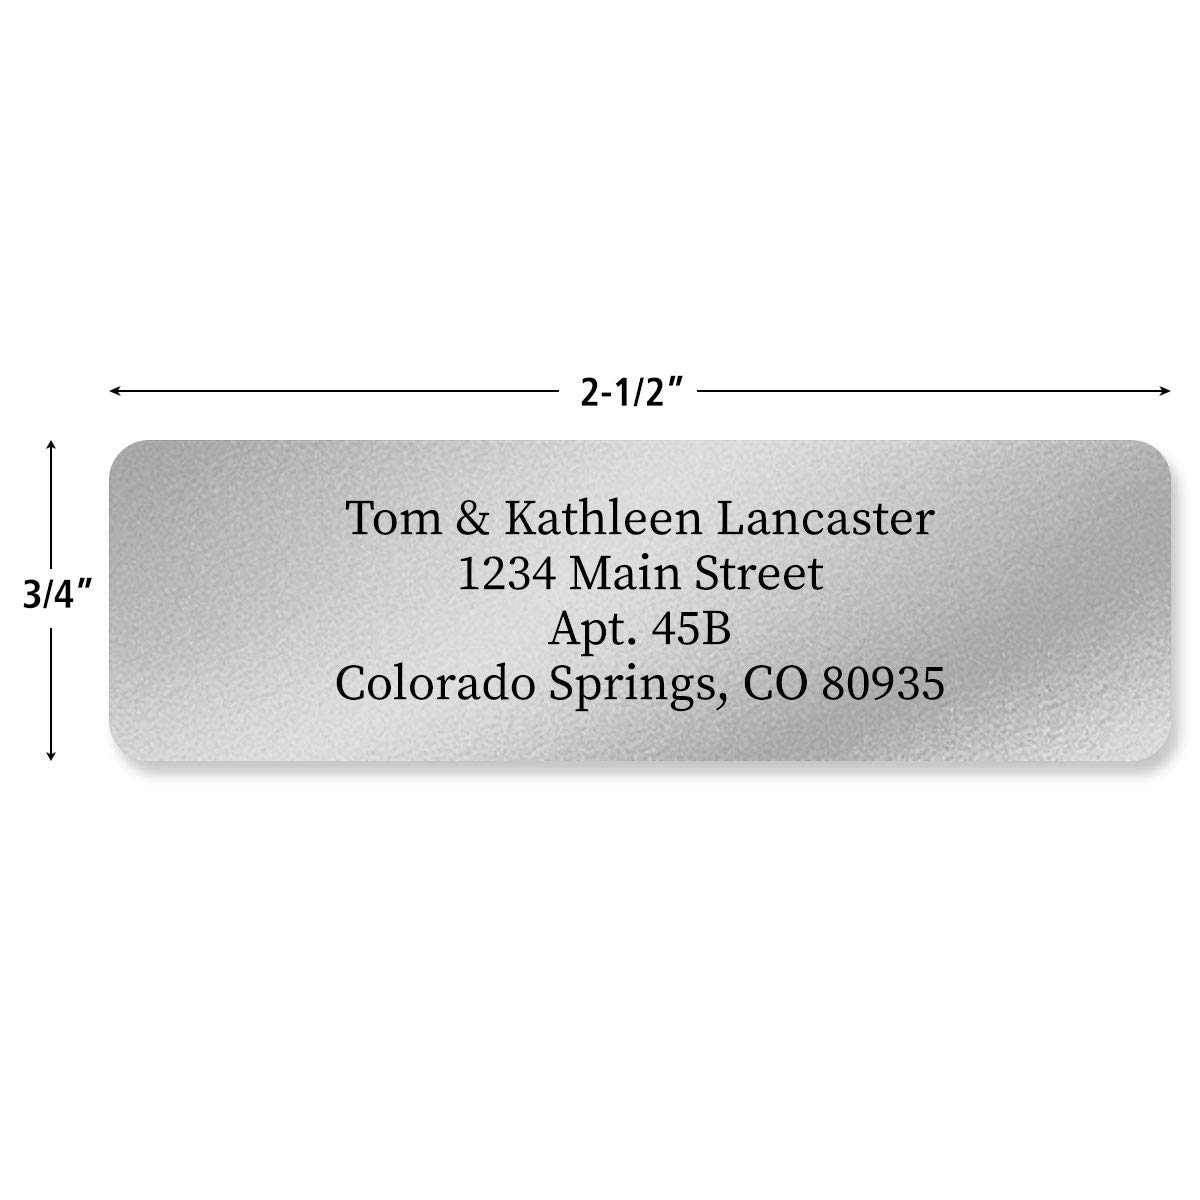 Quantity by Colorful Images Set of Gloss White Rolled Personalized Return Address Labels with Dispenser Self-Adhesive Labels Small